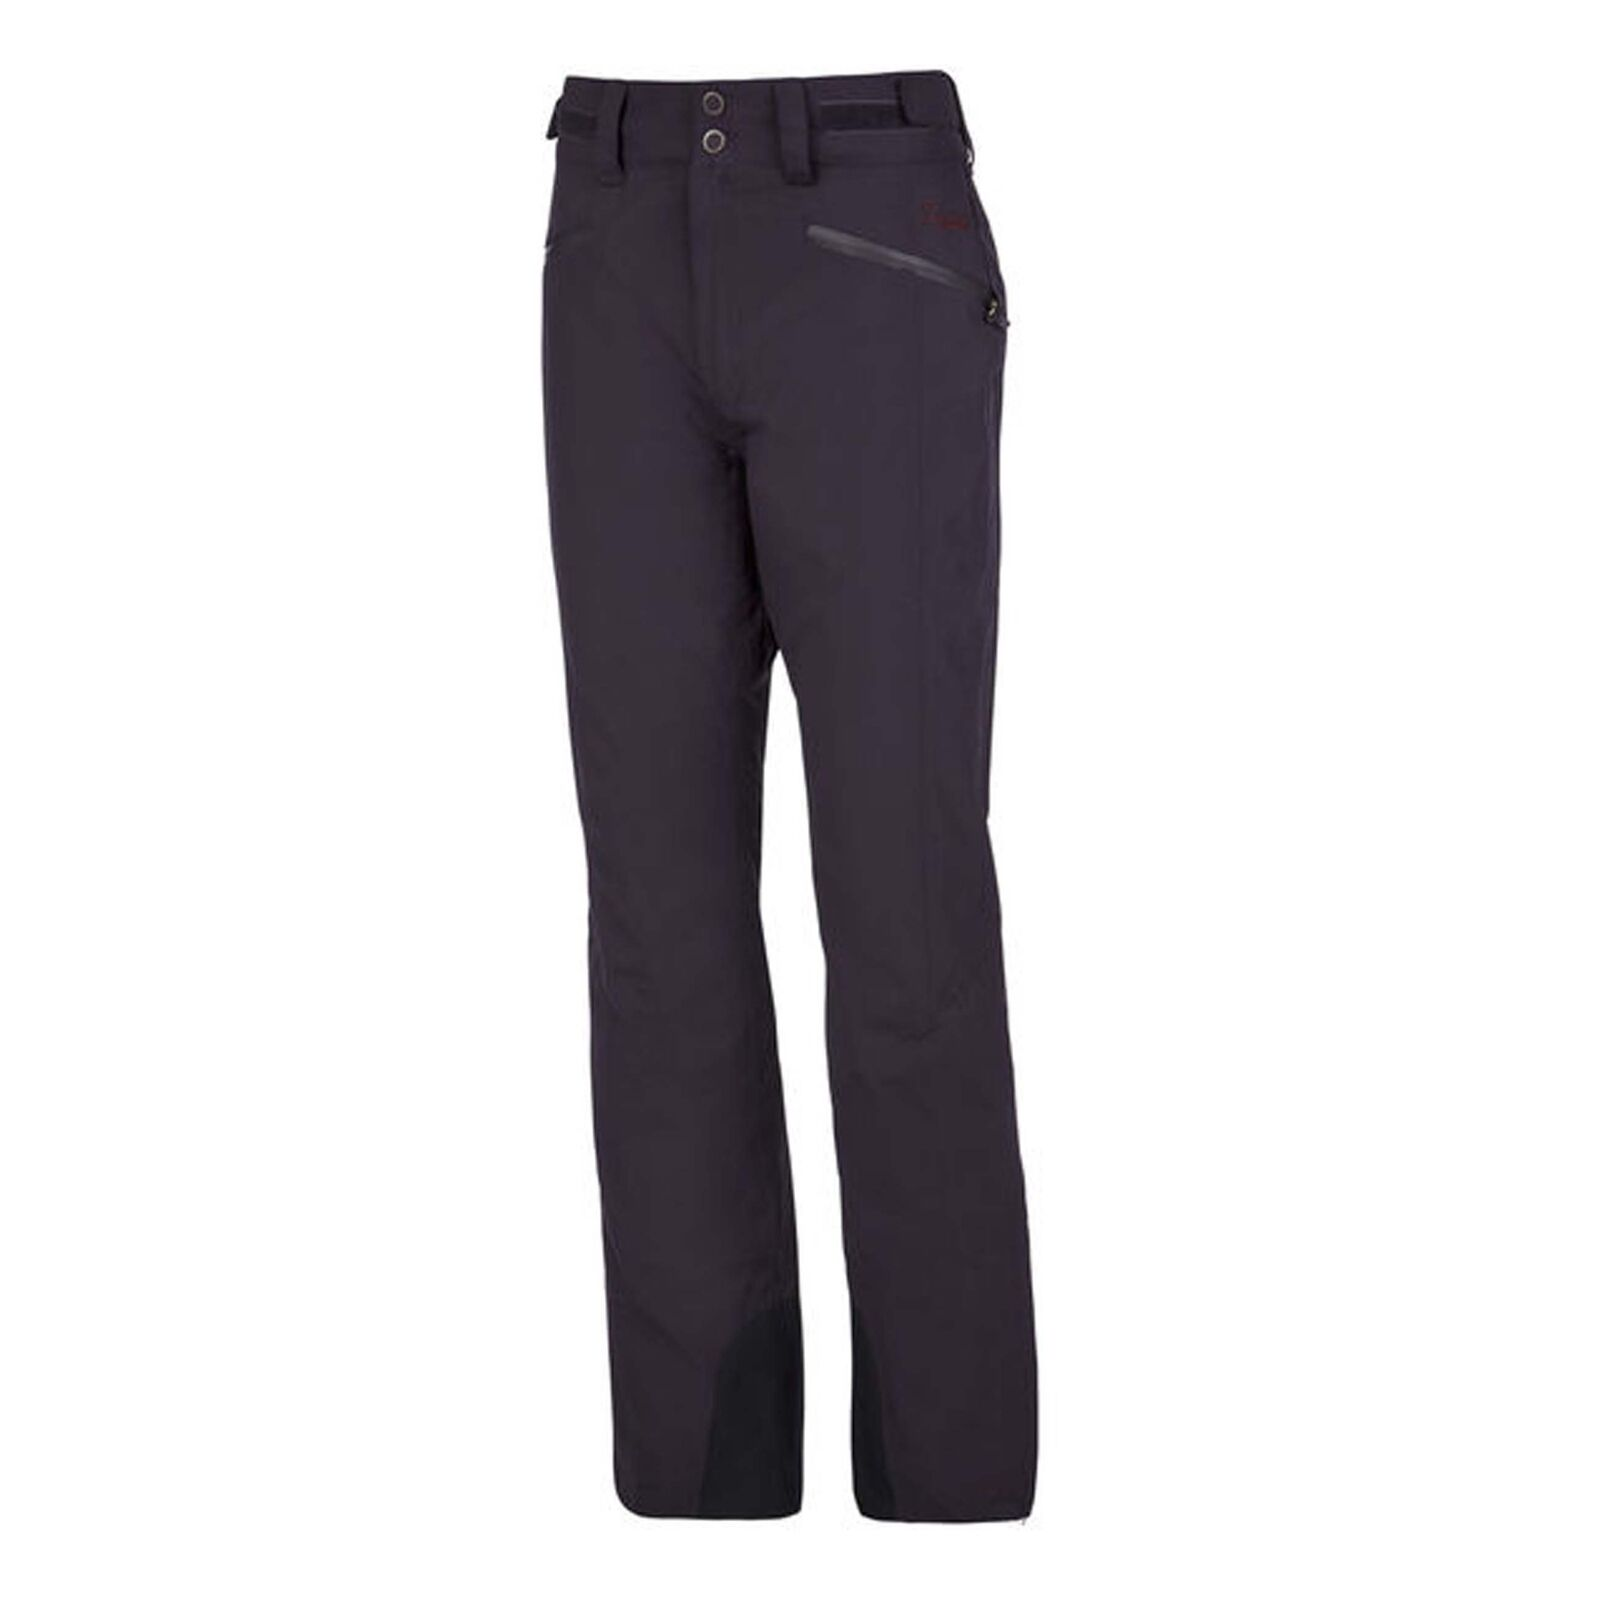 Predest Womens Kensington Ski Snowboard Snow Pants Dark Lava